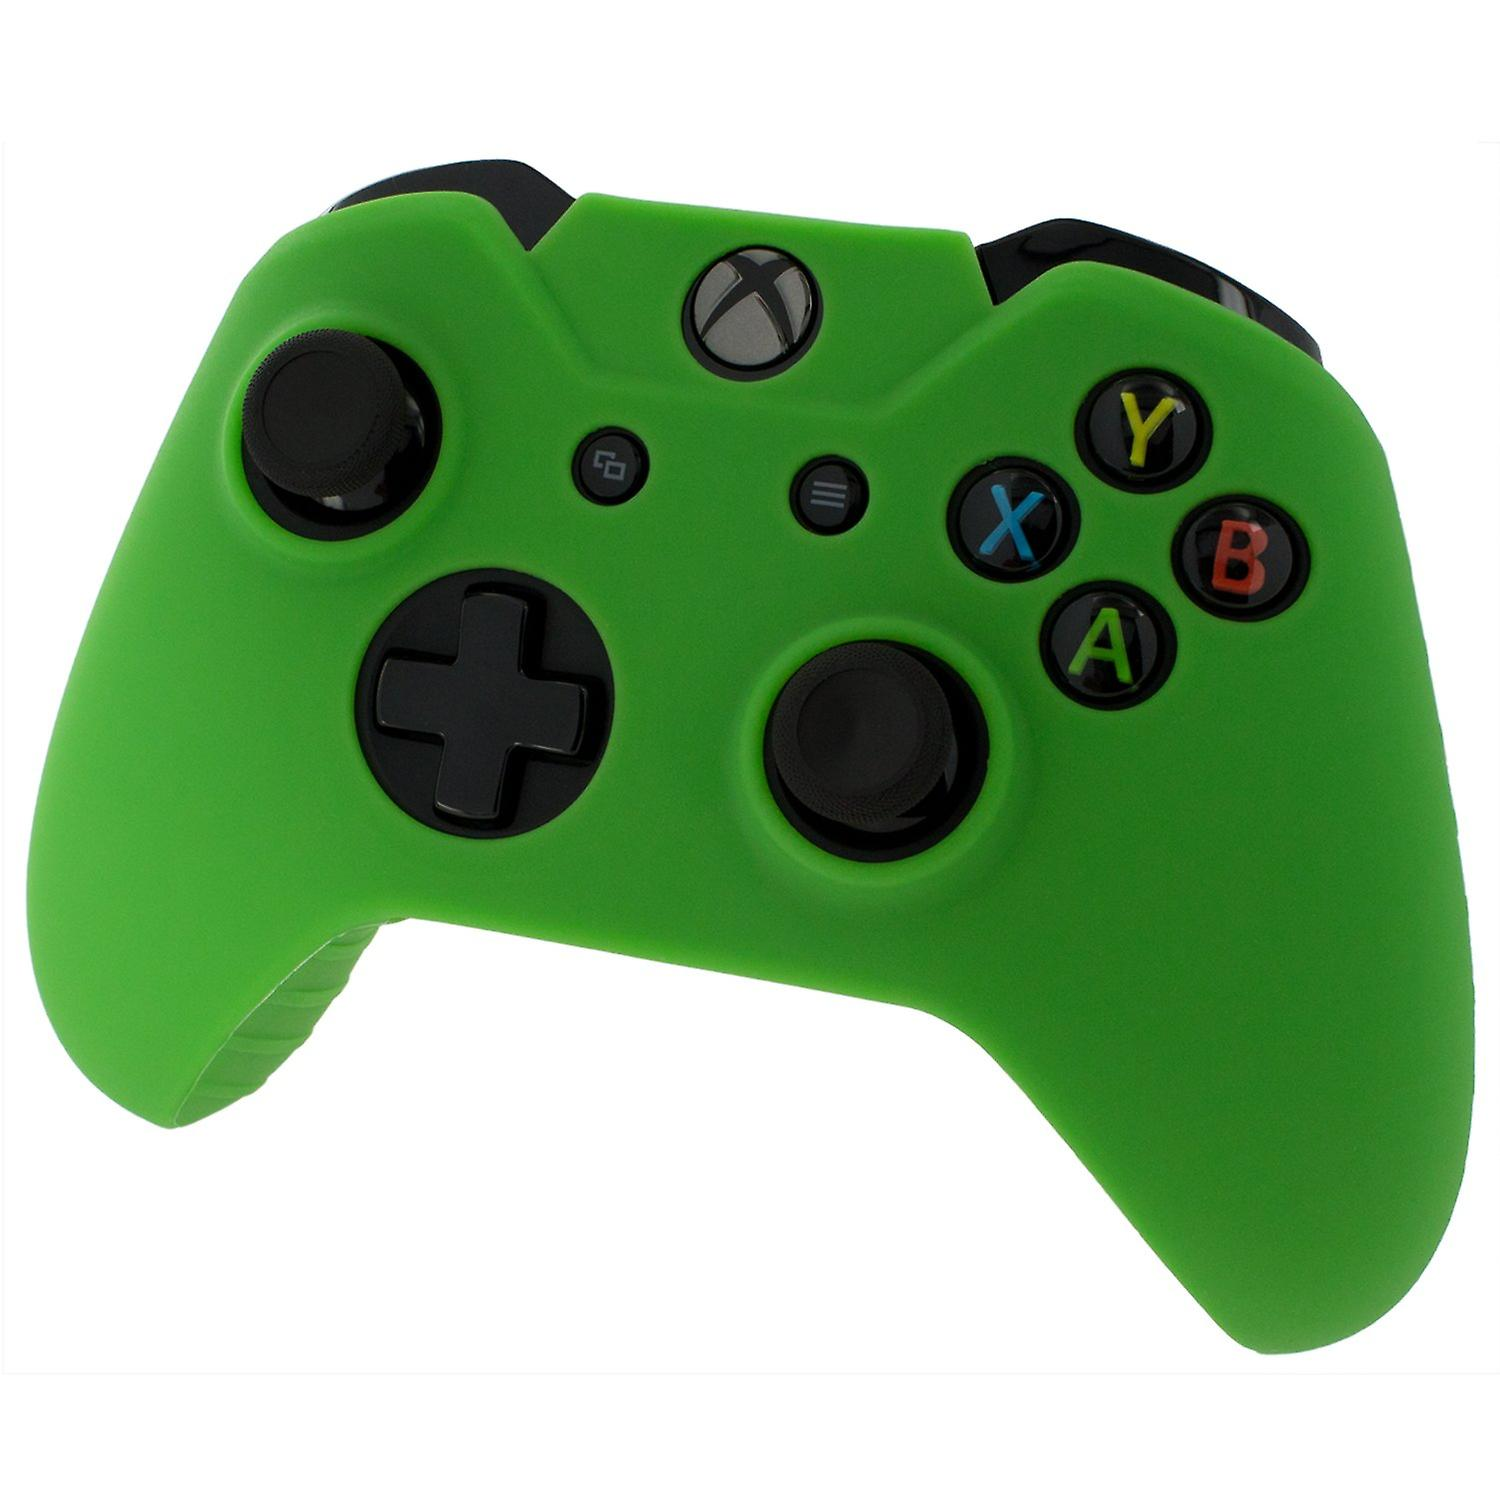 Soft silicone rubber skin grip cover for xbox one controller with ribbed handle - green